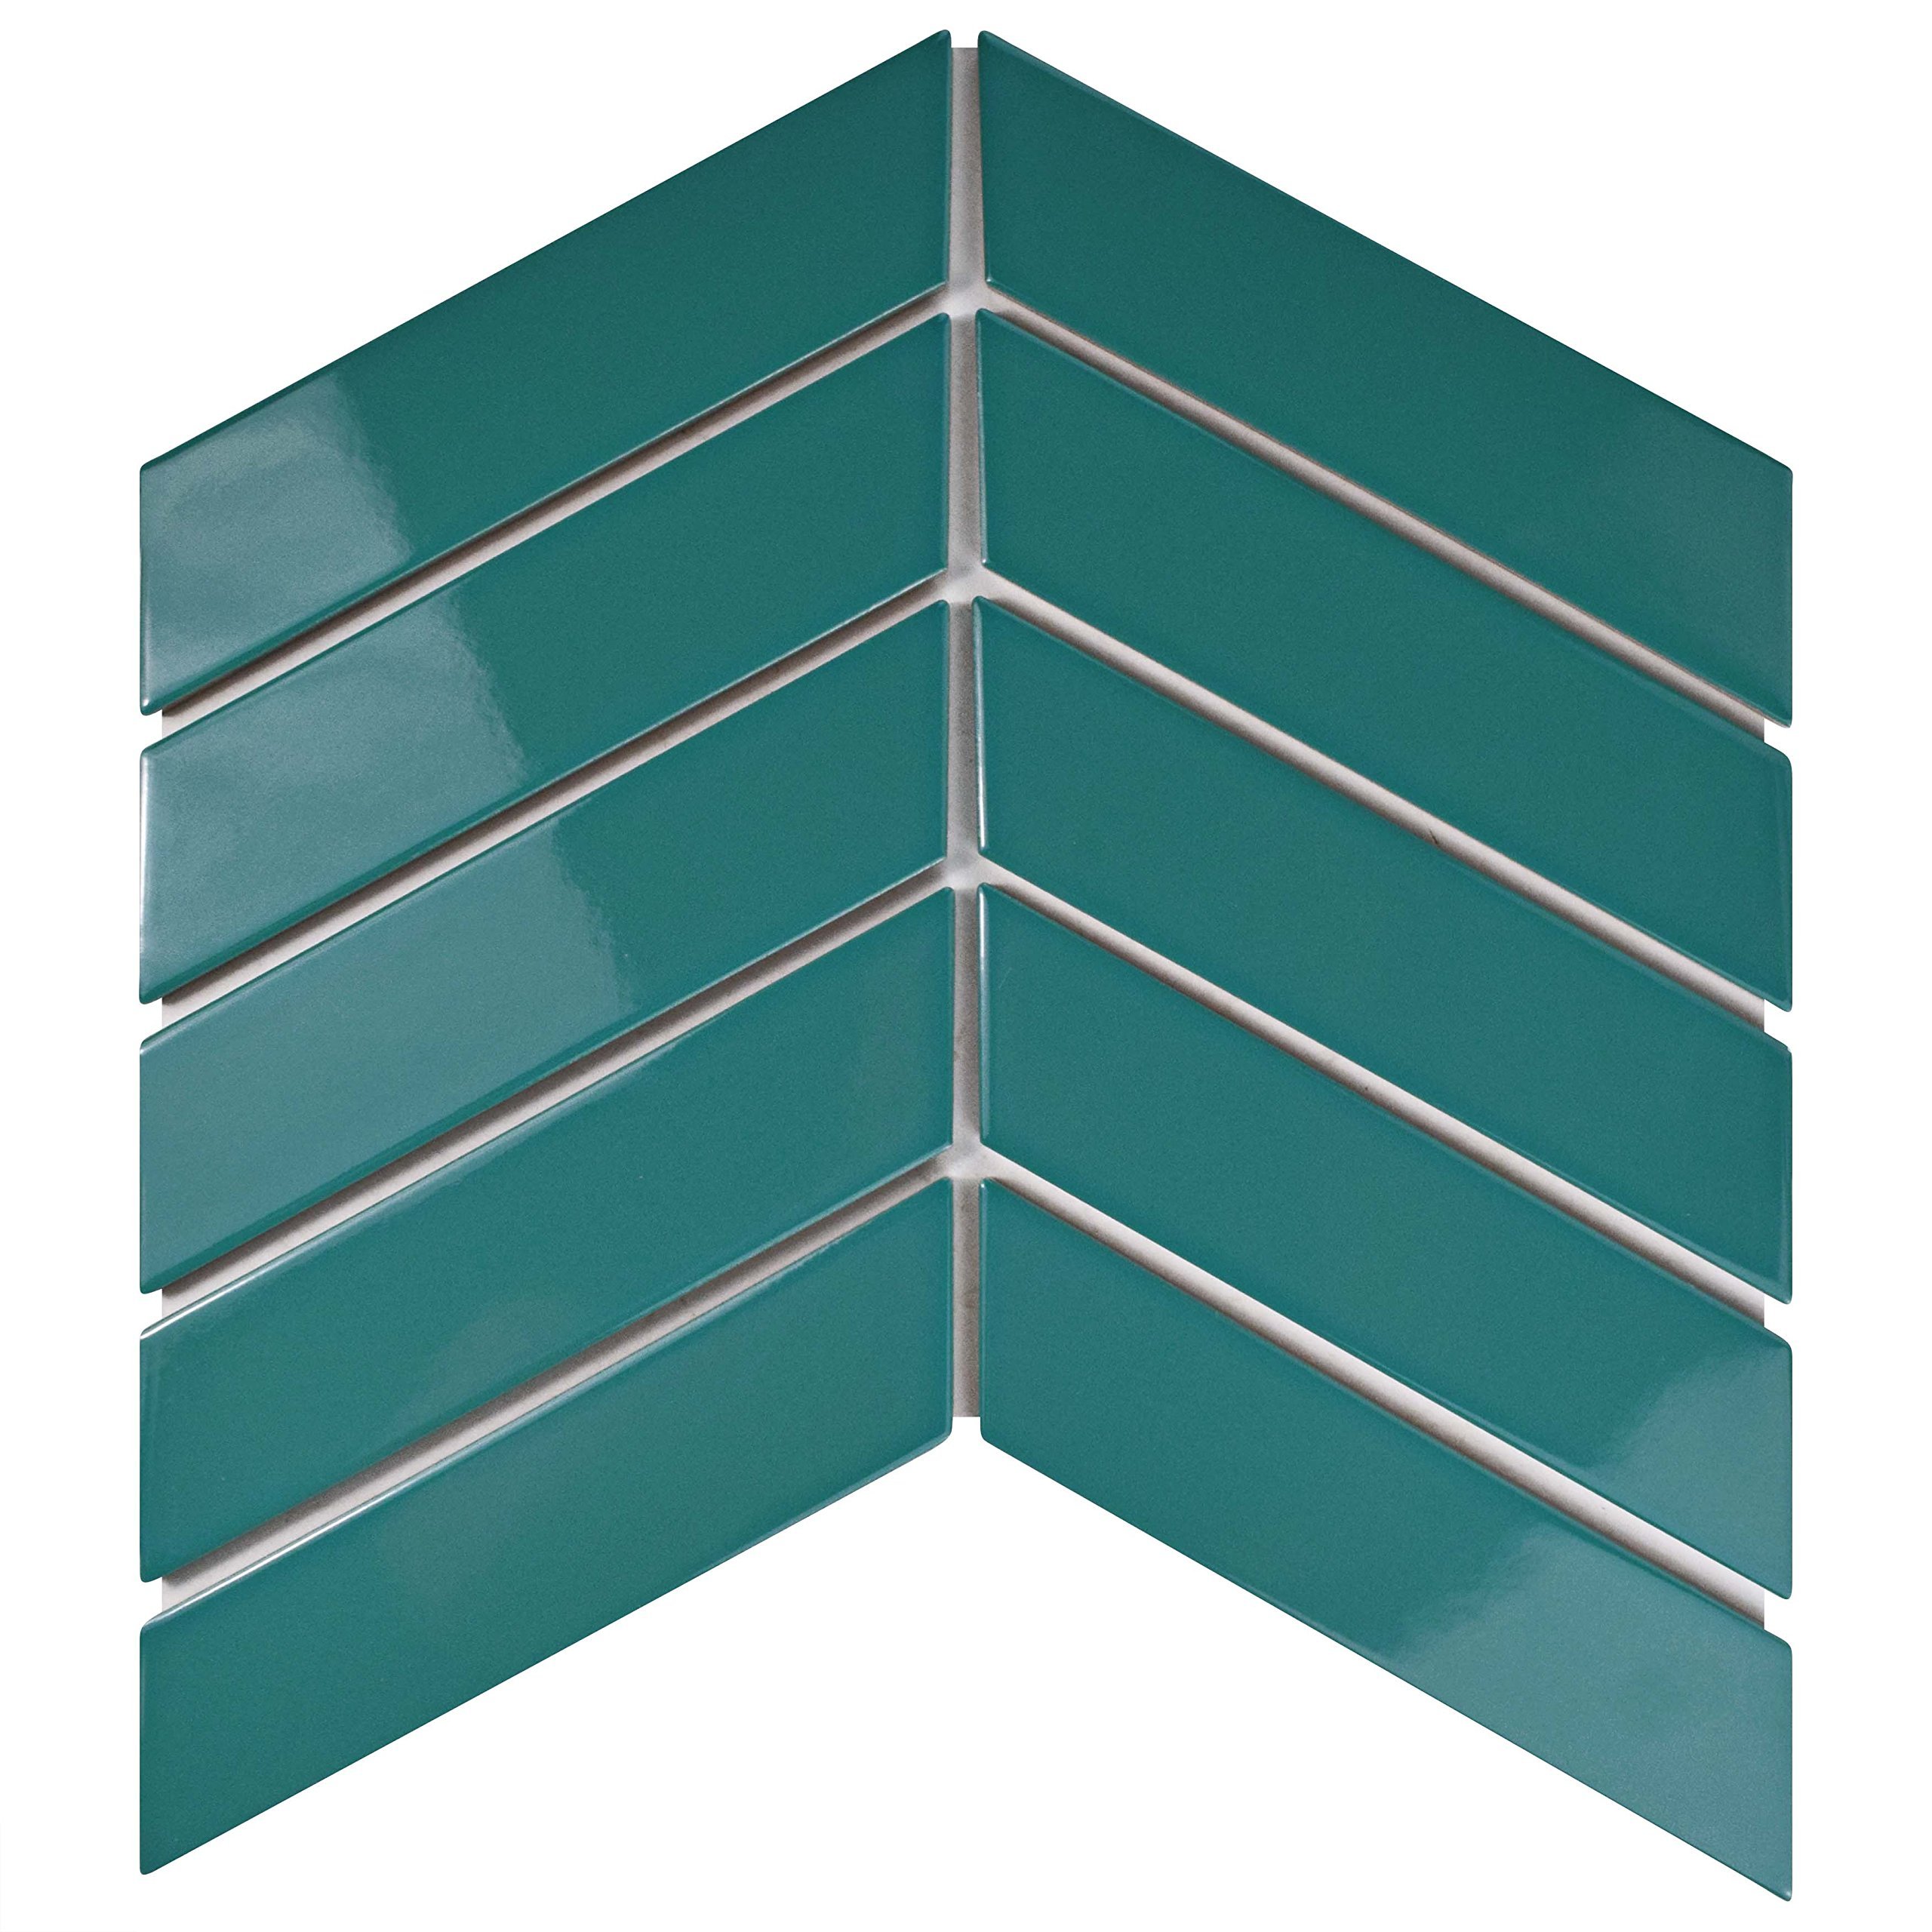 SomerTile FMTSHCGT Retro Soho Chevron Porcelain Floor and Wall Tile, 1.75'' x 7'', Glossy Teal